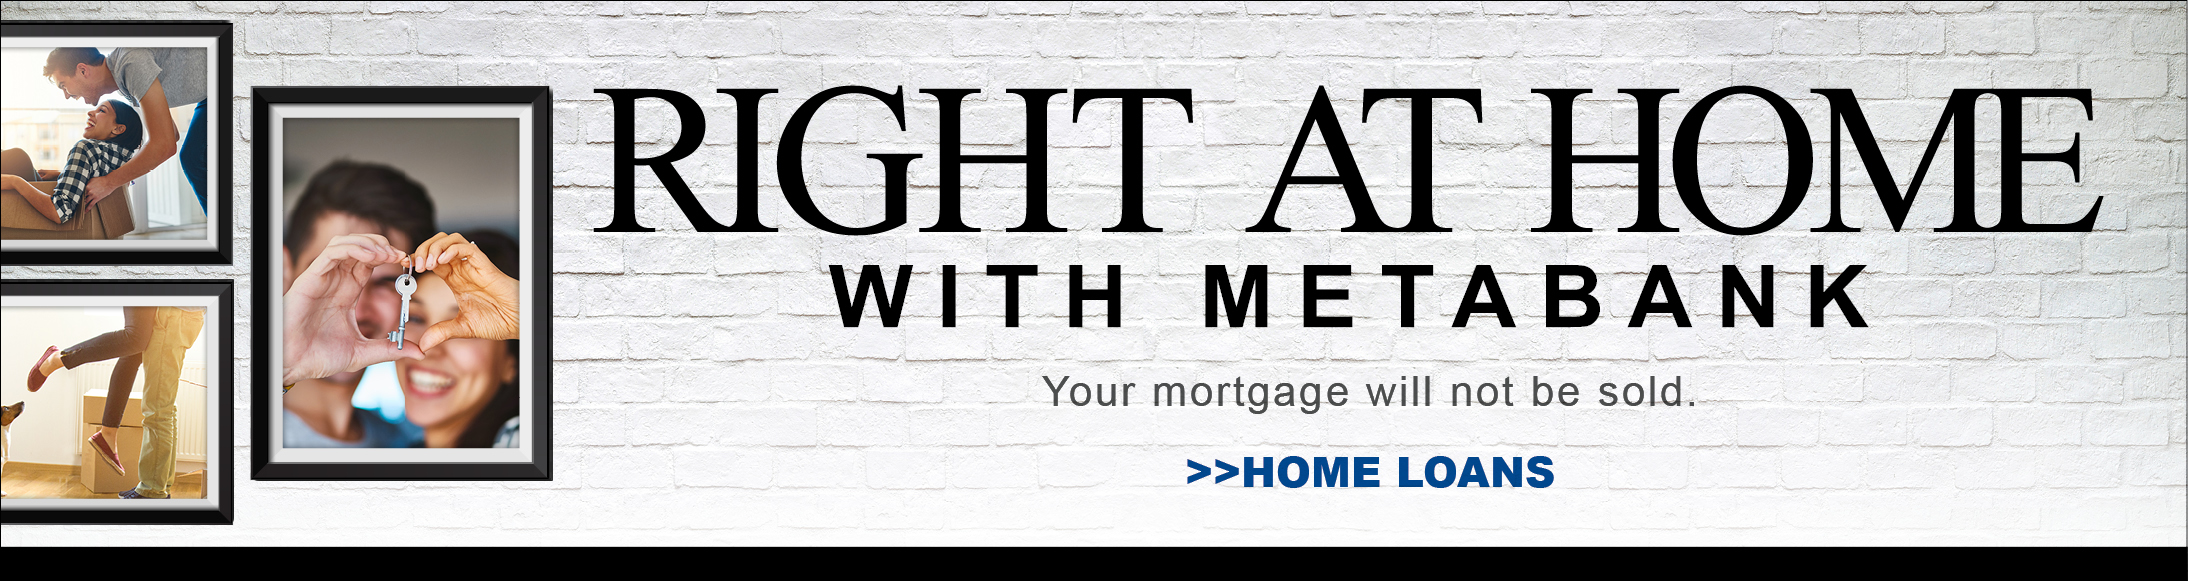 Right At Home With MetaBank